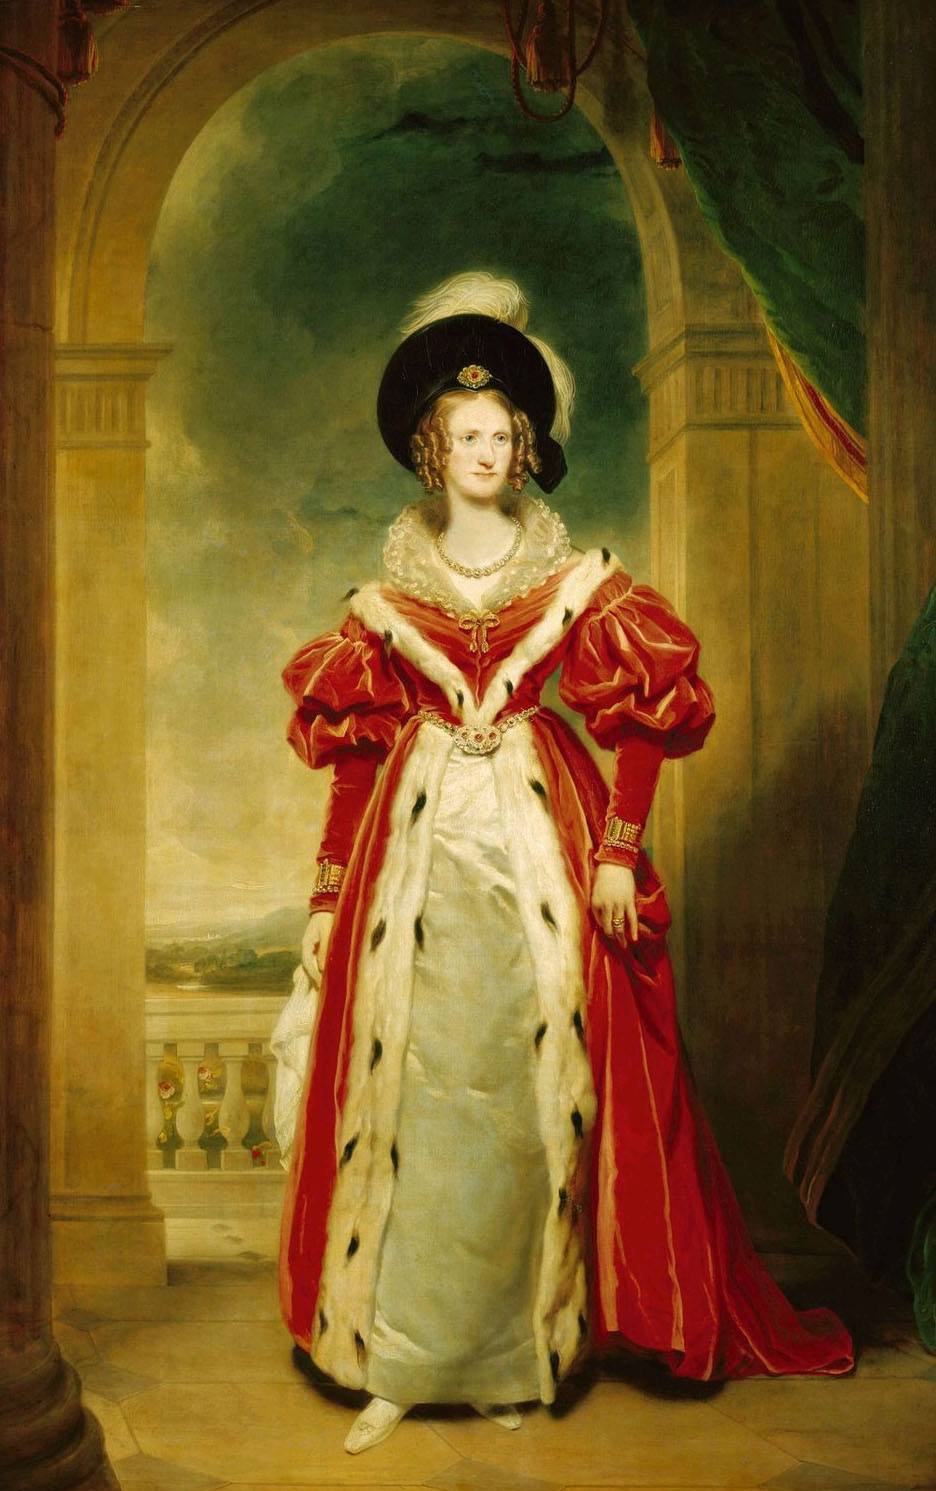 Historic portrait of Queen Adelaide, queen consort to King George II, from the Royal Collection, painted by Martin Archer Shee. Current location; Buckingham Palace, Grand staircase.